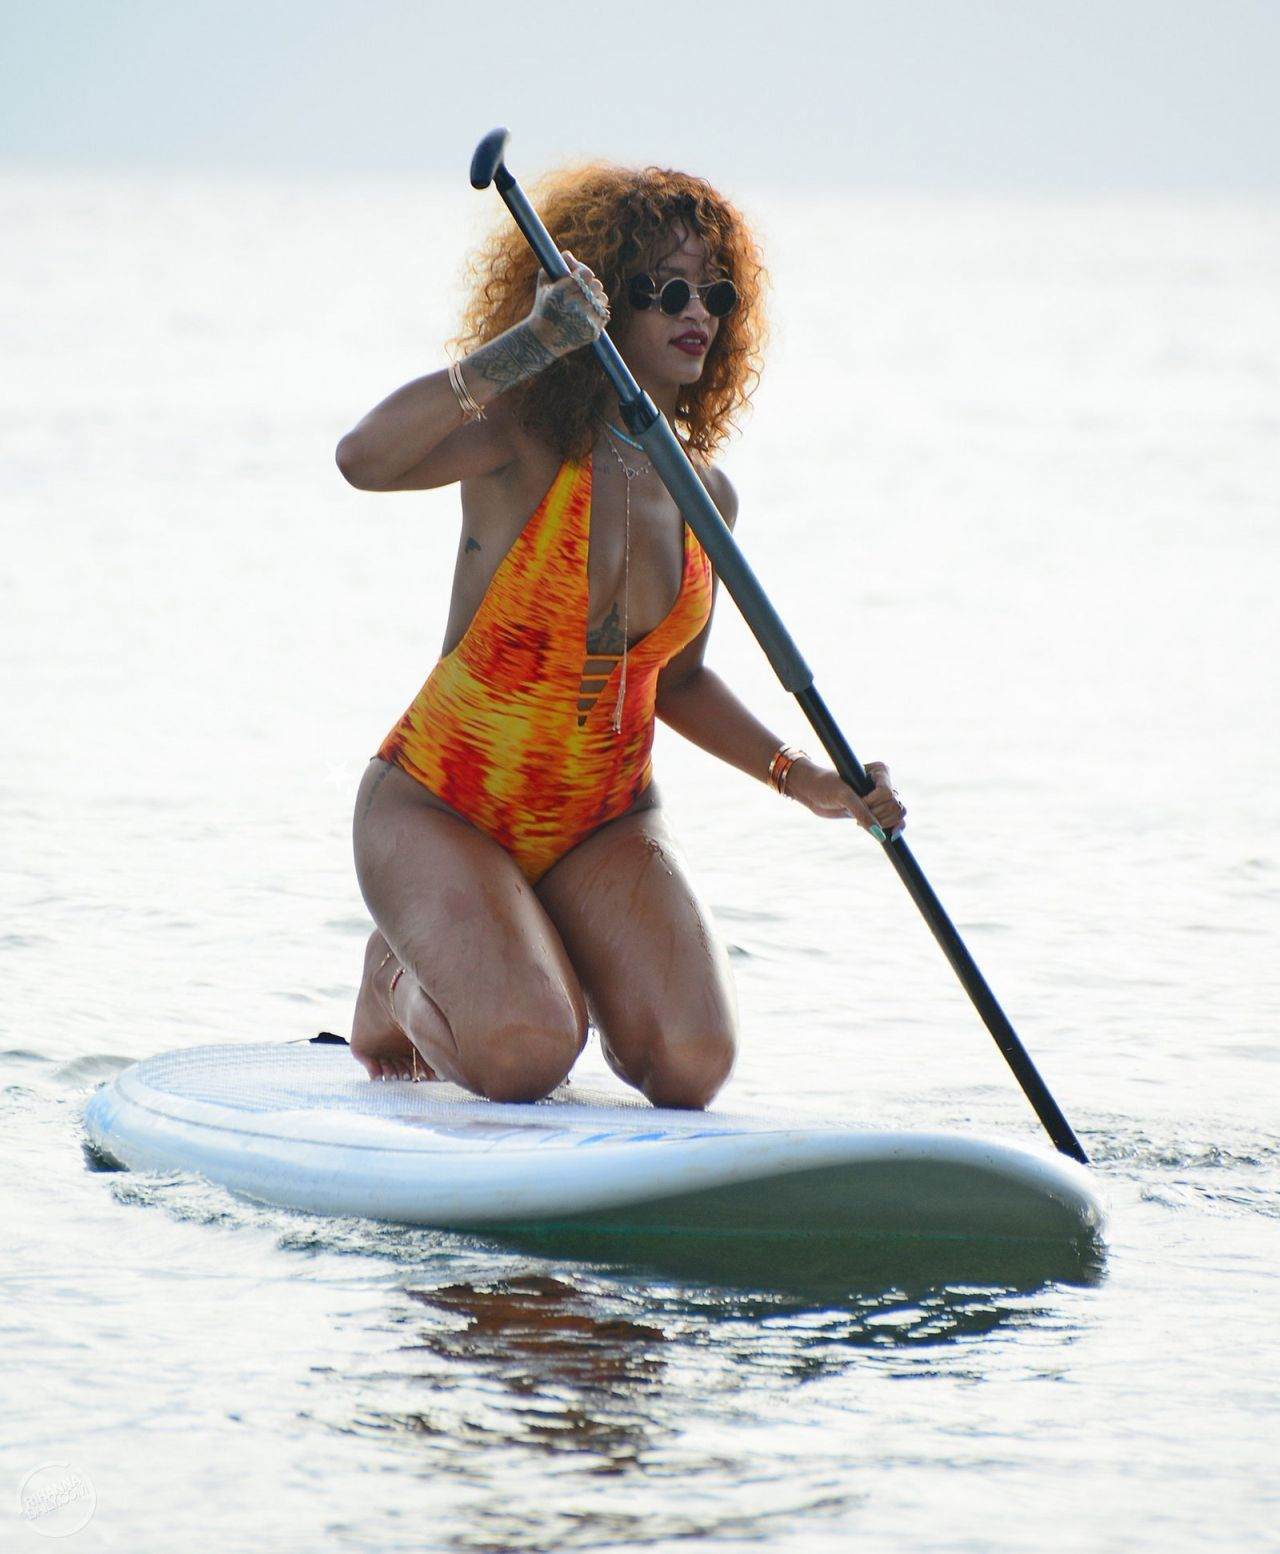 rihanna-paddle-boating-in-a-swimsuit-in-barbados-august-2015_1